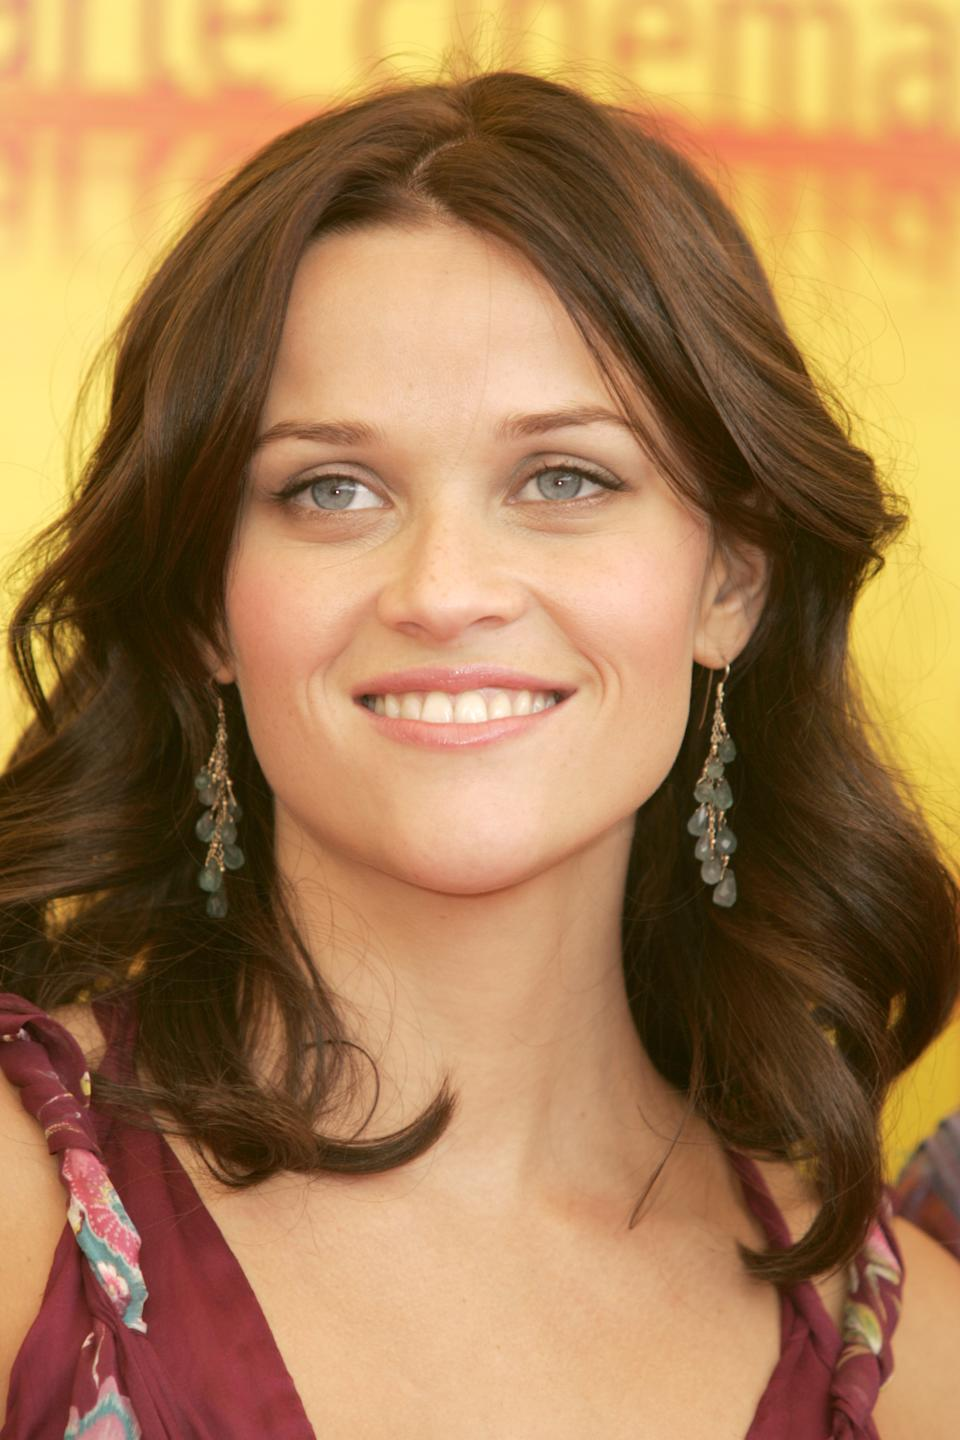 Reese Witherspoon at Venice Film Festival in 2004 with her Walk the Line hair [Photo: Getty]